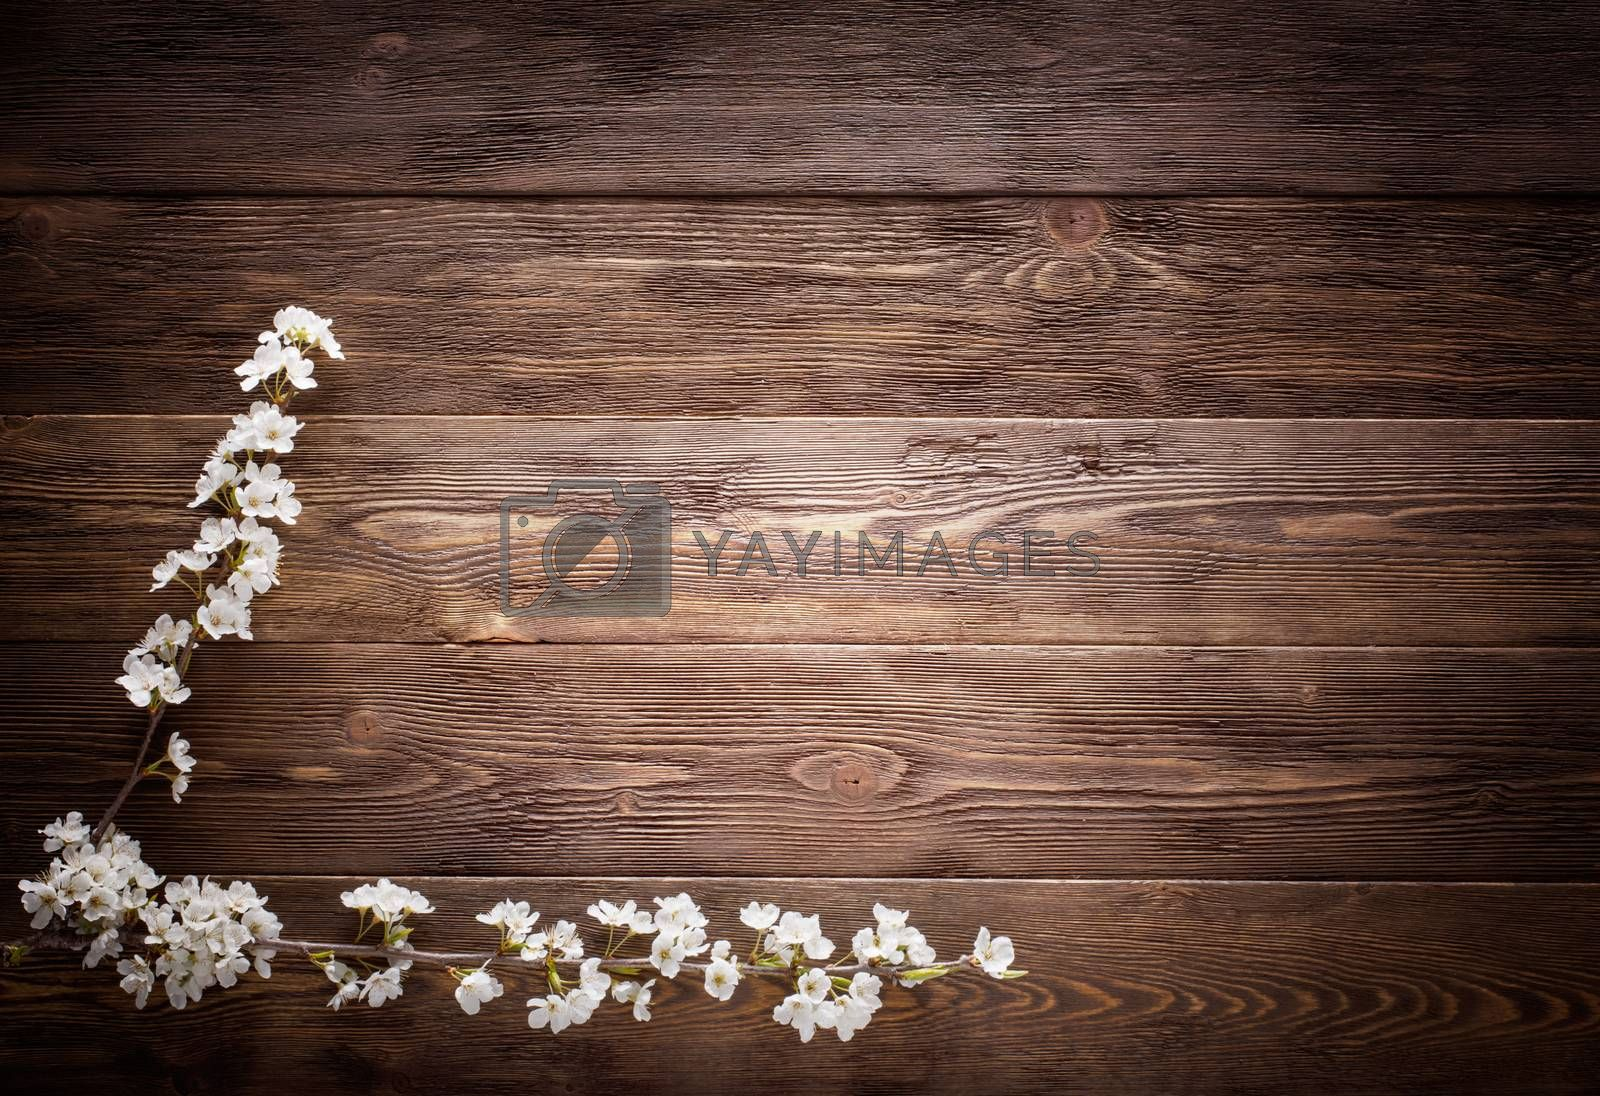 Royalty free image of Summer Flowers on wood texture background by primopiano